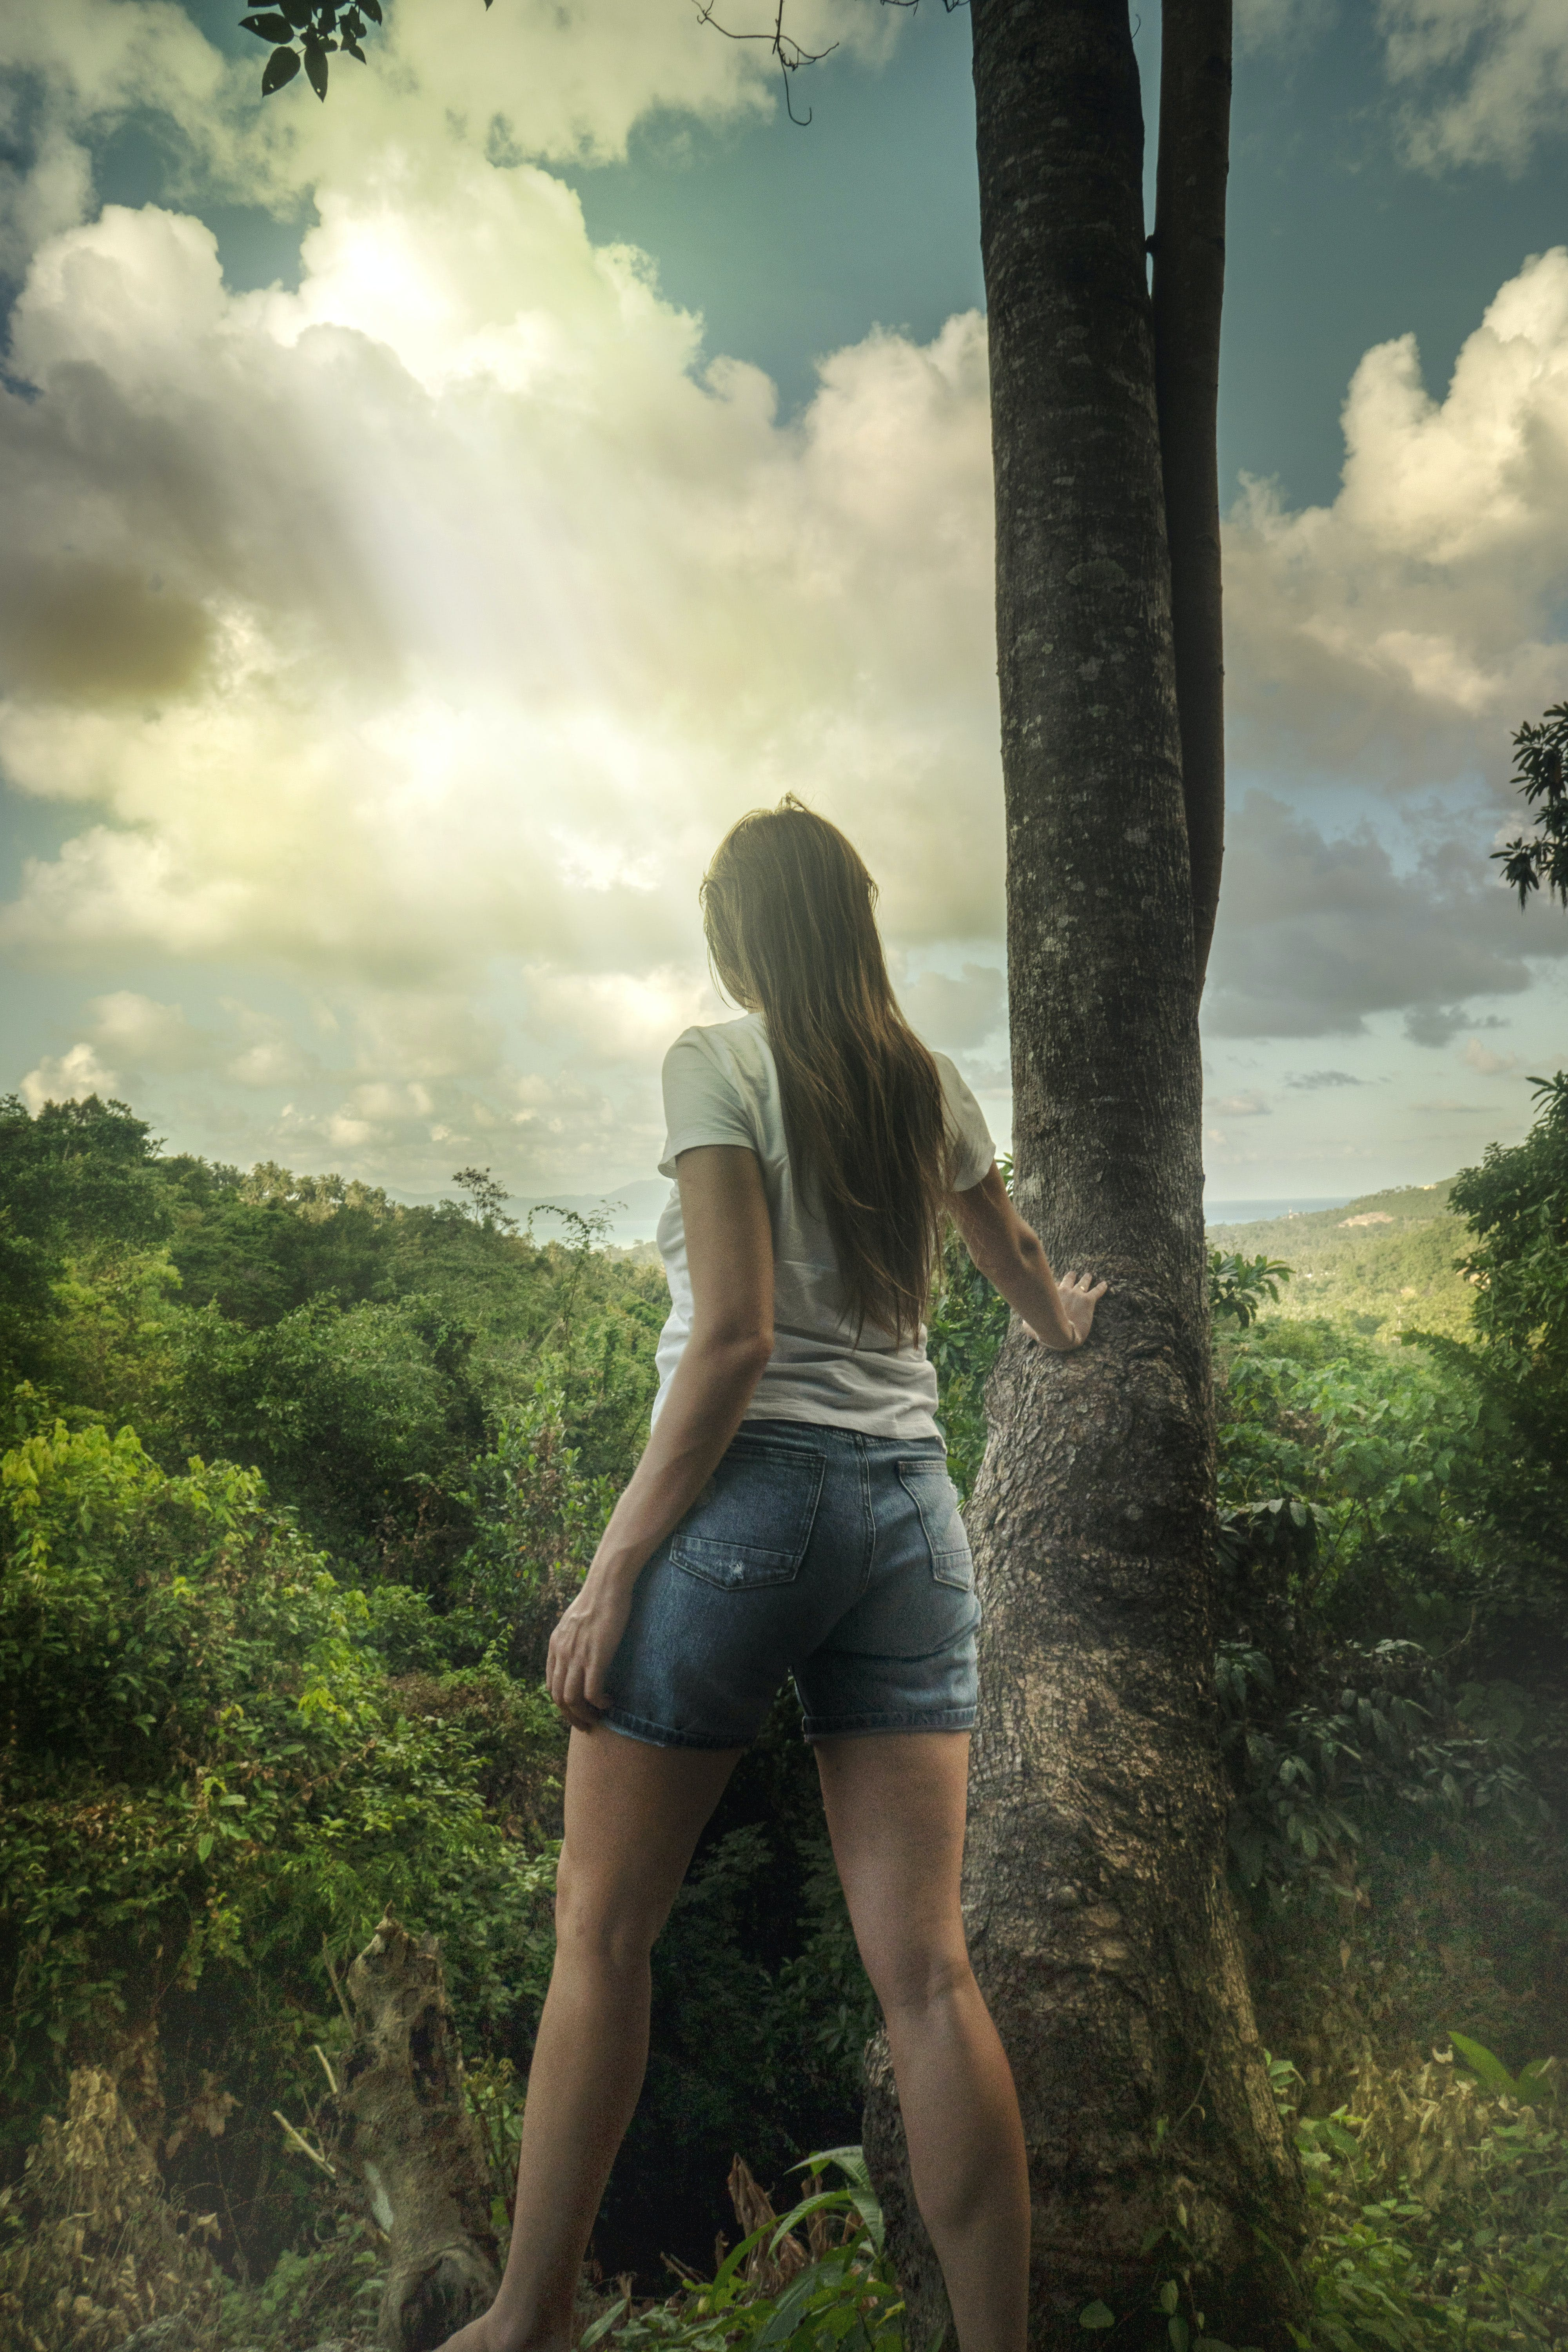 Woman in Gray T-shirt Leaning on Gray Tree Under Cloudy Sky